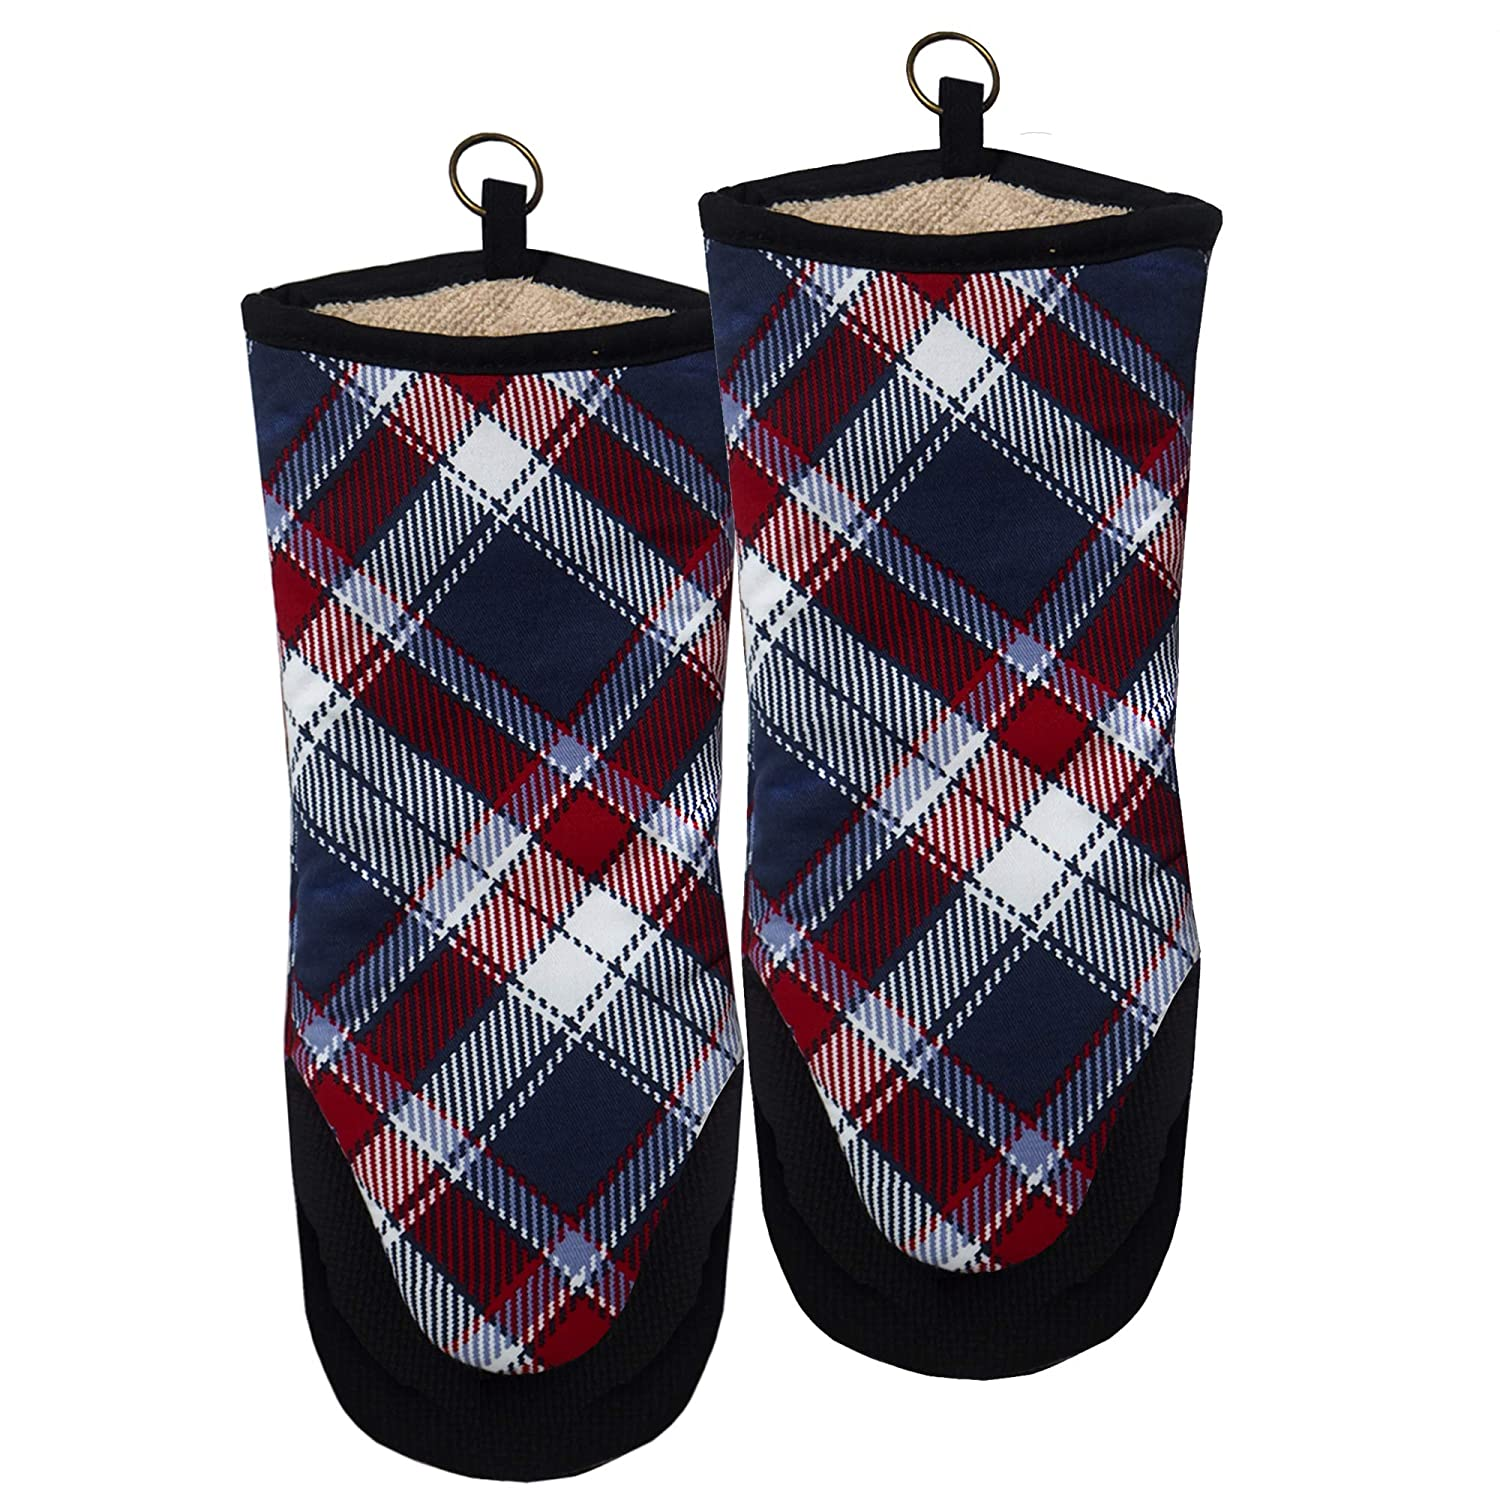 RED LMLDETA Oven Mitts Gloves Neoprene Puppet 1Pair Heat Resistant Non Slip 100% Cotton Pot Holders Women Men Mittens Cooking Barbecue BBQ Microwave Machine Washable (Blue Plaid)